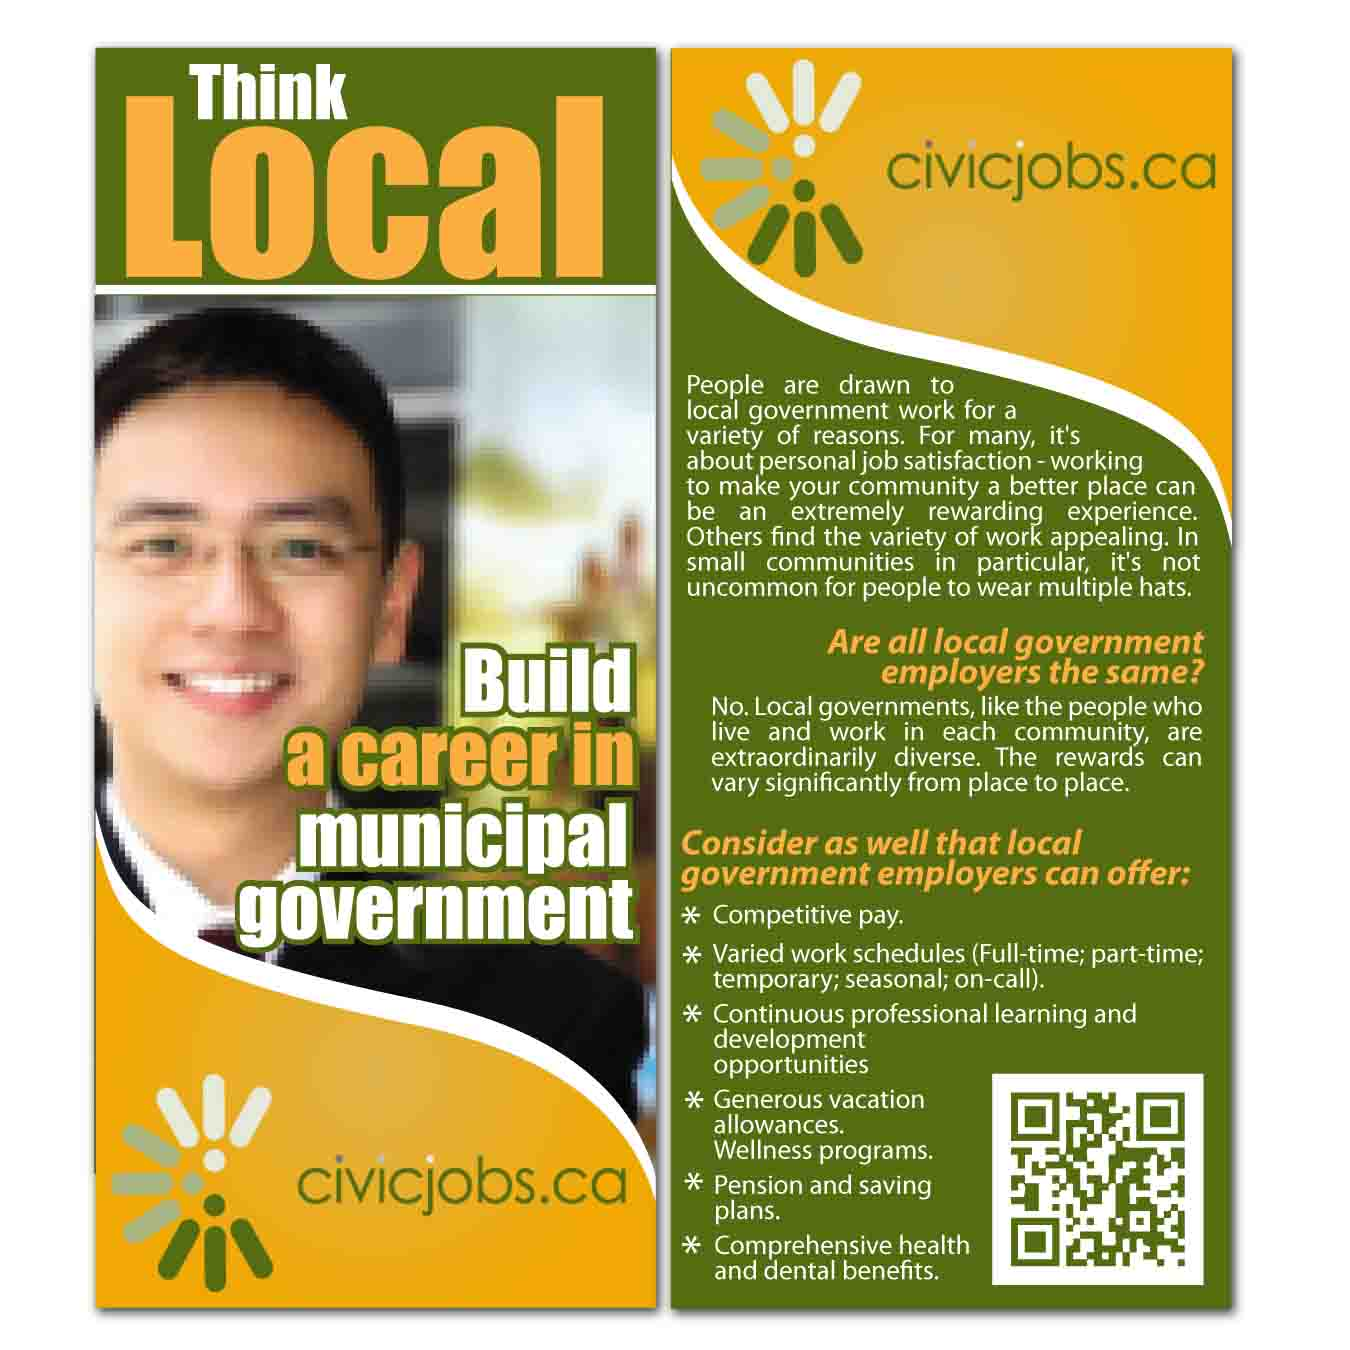 "Print Design by Agung Nugroho - Entry No. 19 in the Print Design Contest Print Design Wanted for CivicJobs.ca - 4"" X 9"" rack card, 2 sided, print ready.."